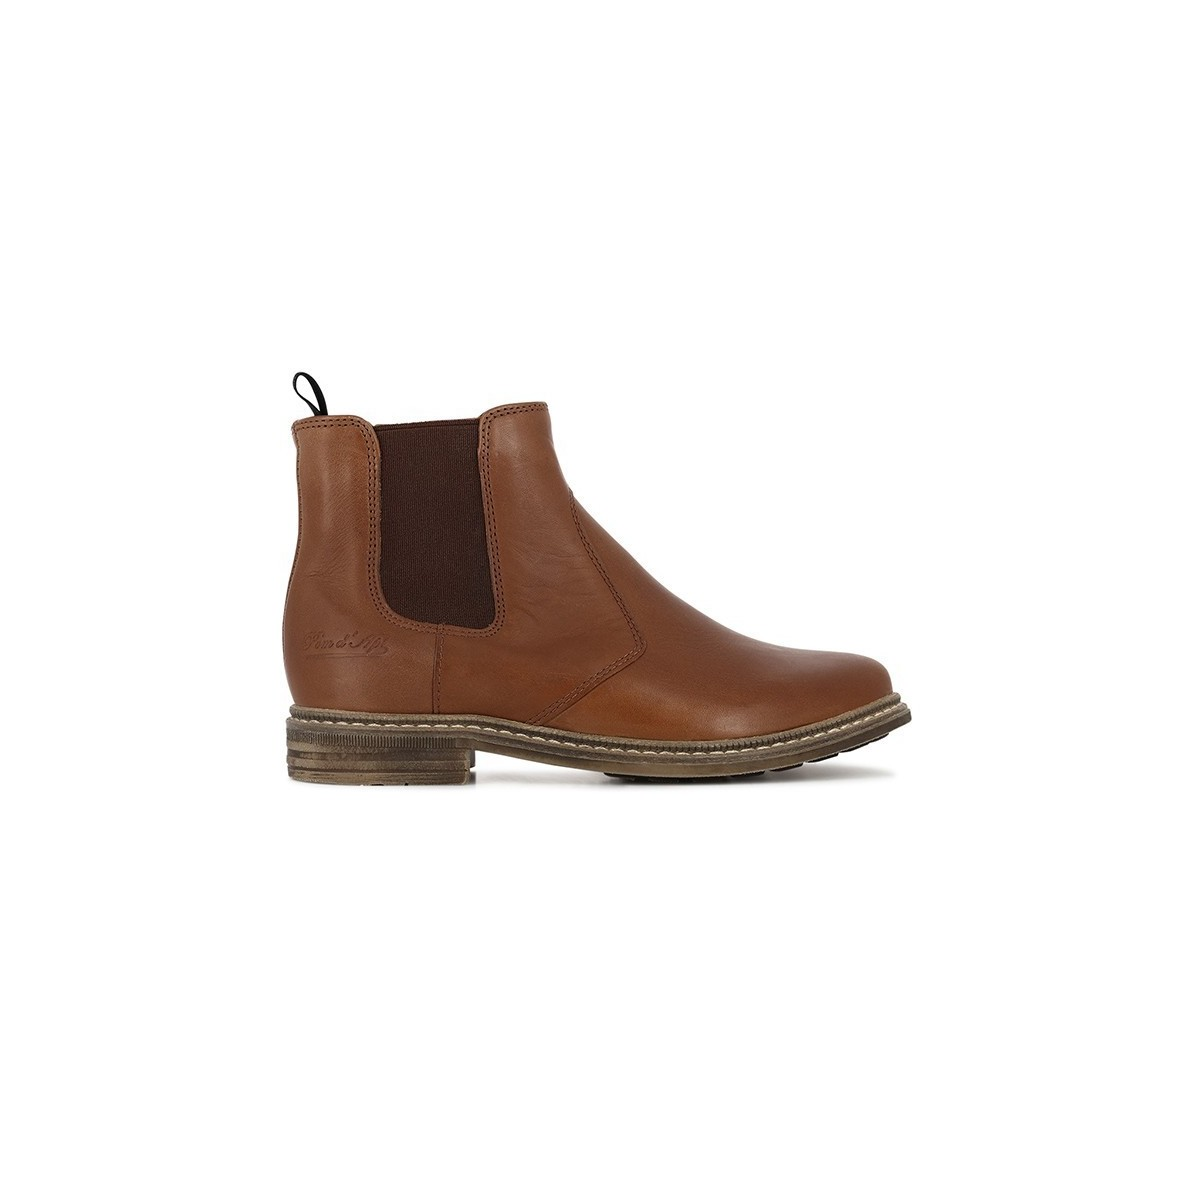 Boots Brother cuir camel